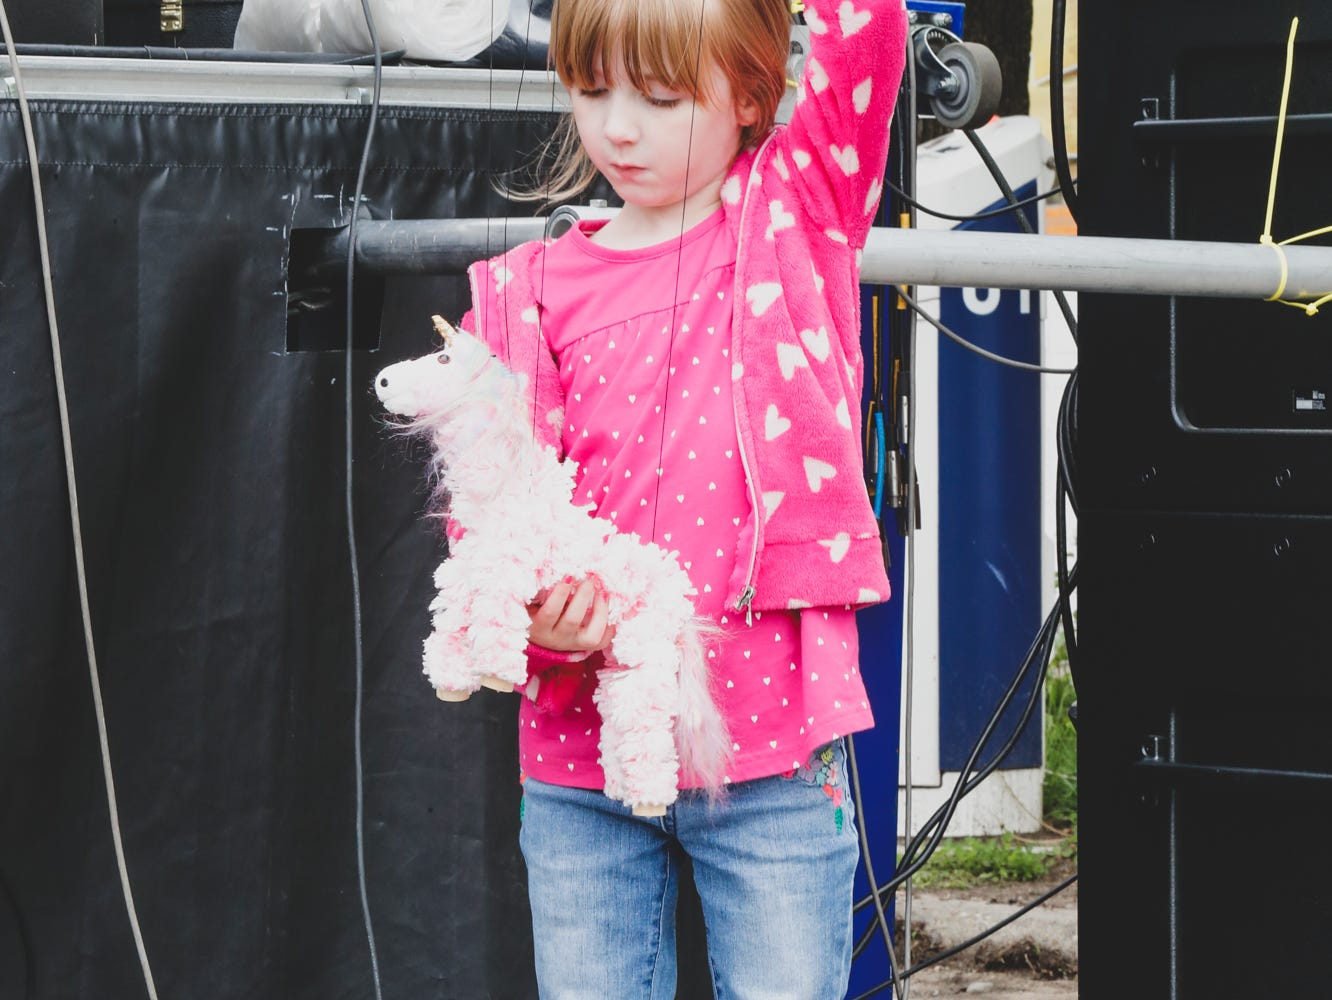 Gracelynn Schacke plays with her unicorn puppet while listening to Cairo Jag, during the Virginia Avenue Music Fest, held in Fountain Square, located in Indianapolis, on Saturday, May 11, 2019.